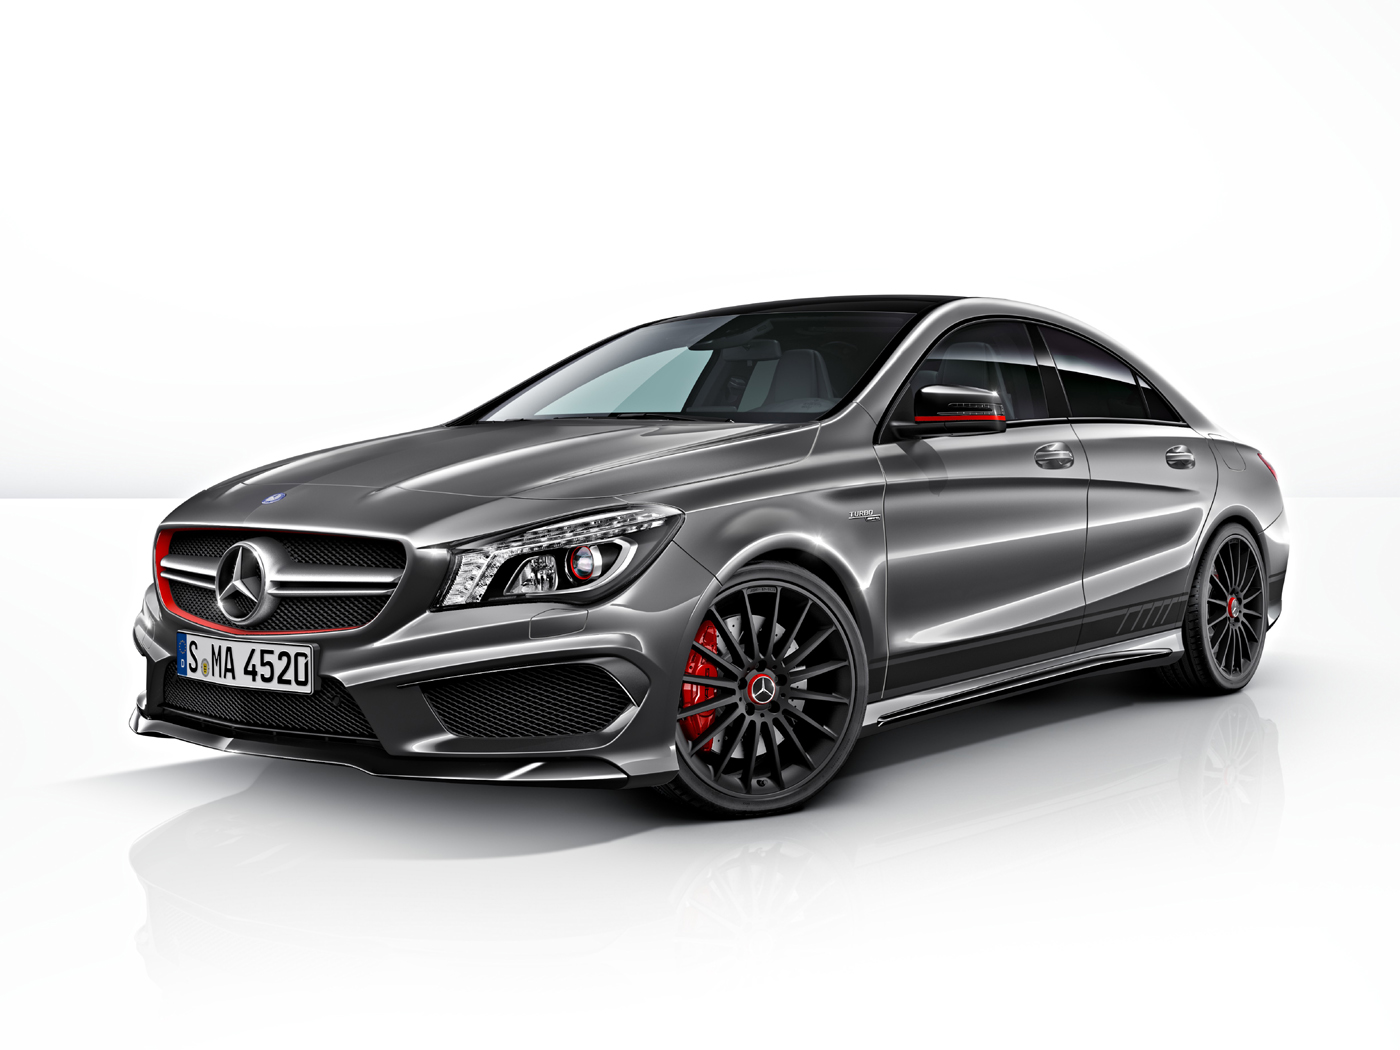 mercedes benz cla 45 amg now officially available in malaysia price from rm393k. Black Bedroom Furniture Sets. Home Design Ideas